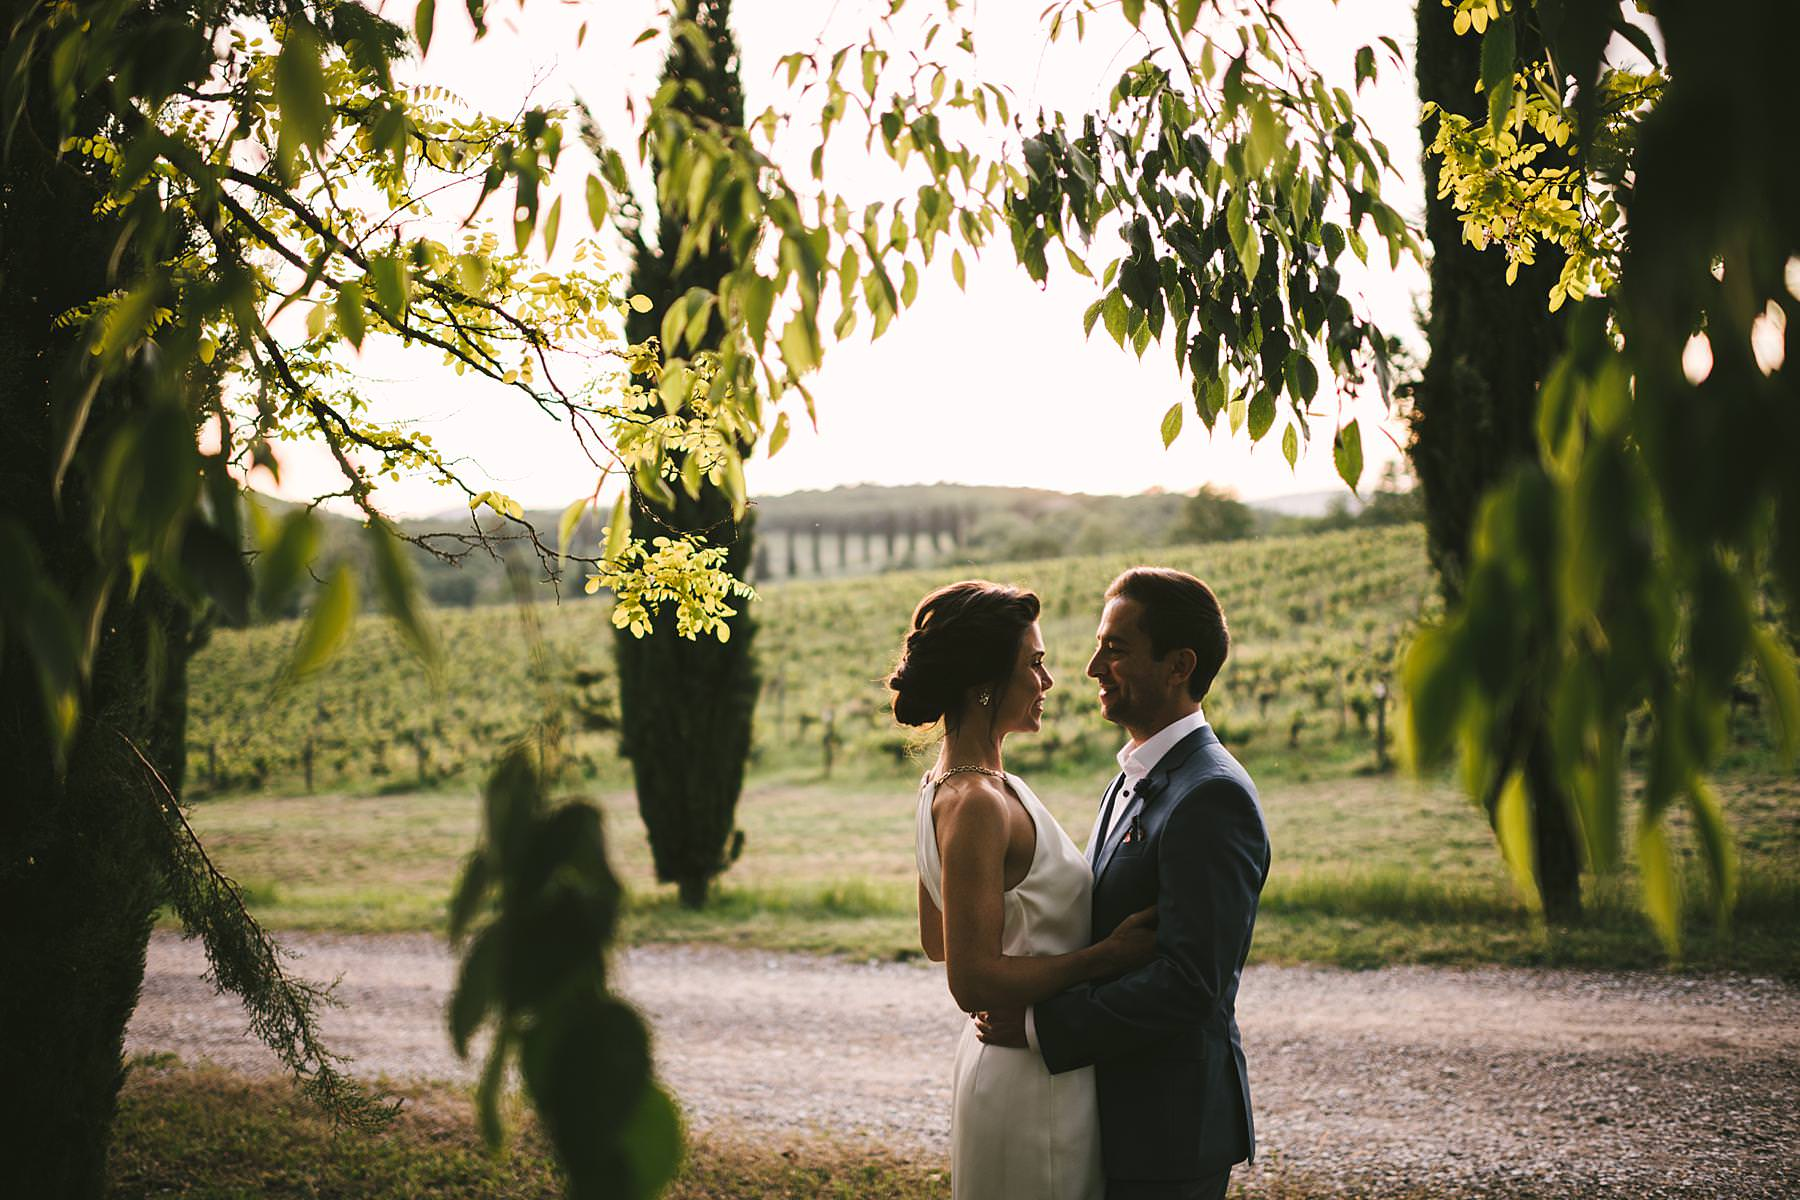 Romantic and elegant pre-wedding photo shoot in Tuscany near vineyard and cypresses street at the historic estate of Villa La Selva Wine Resort